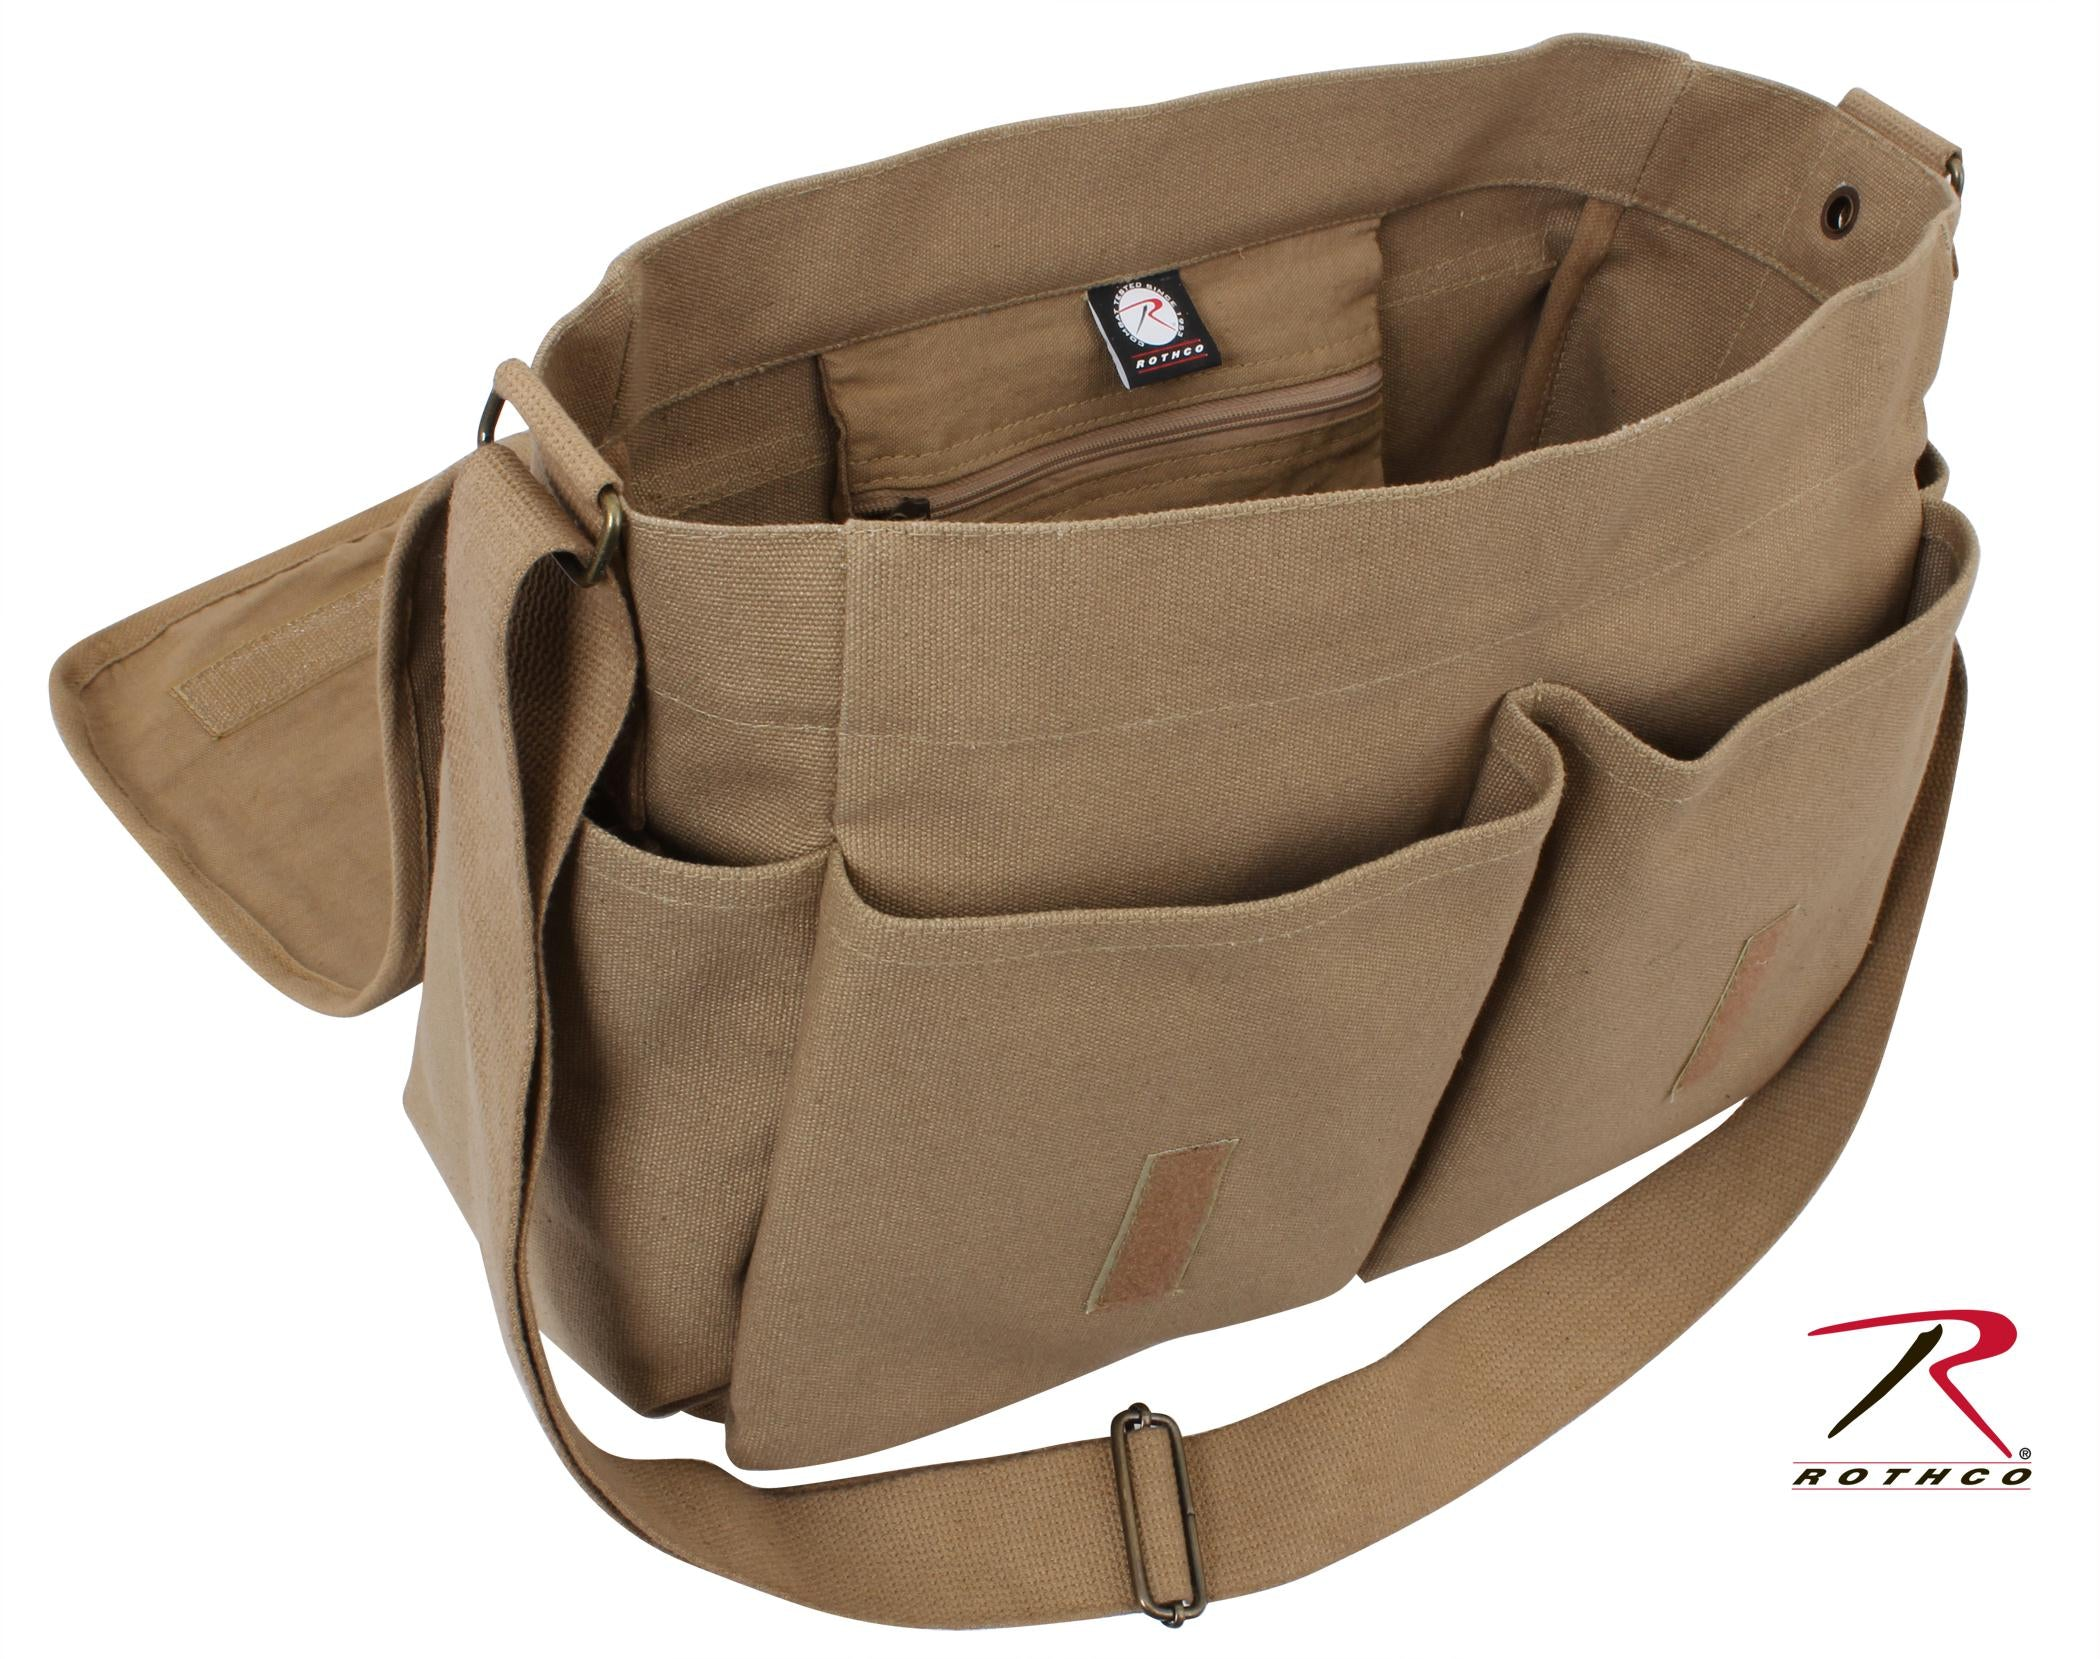 Rothco Vintage Unwashed Canvas Messenger Bag - Coyote Brown